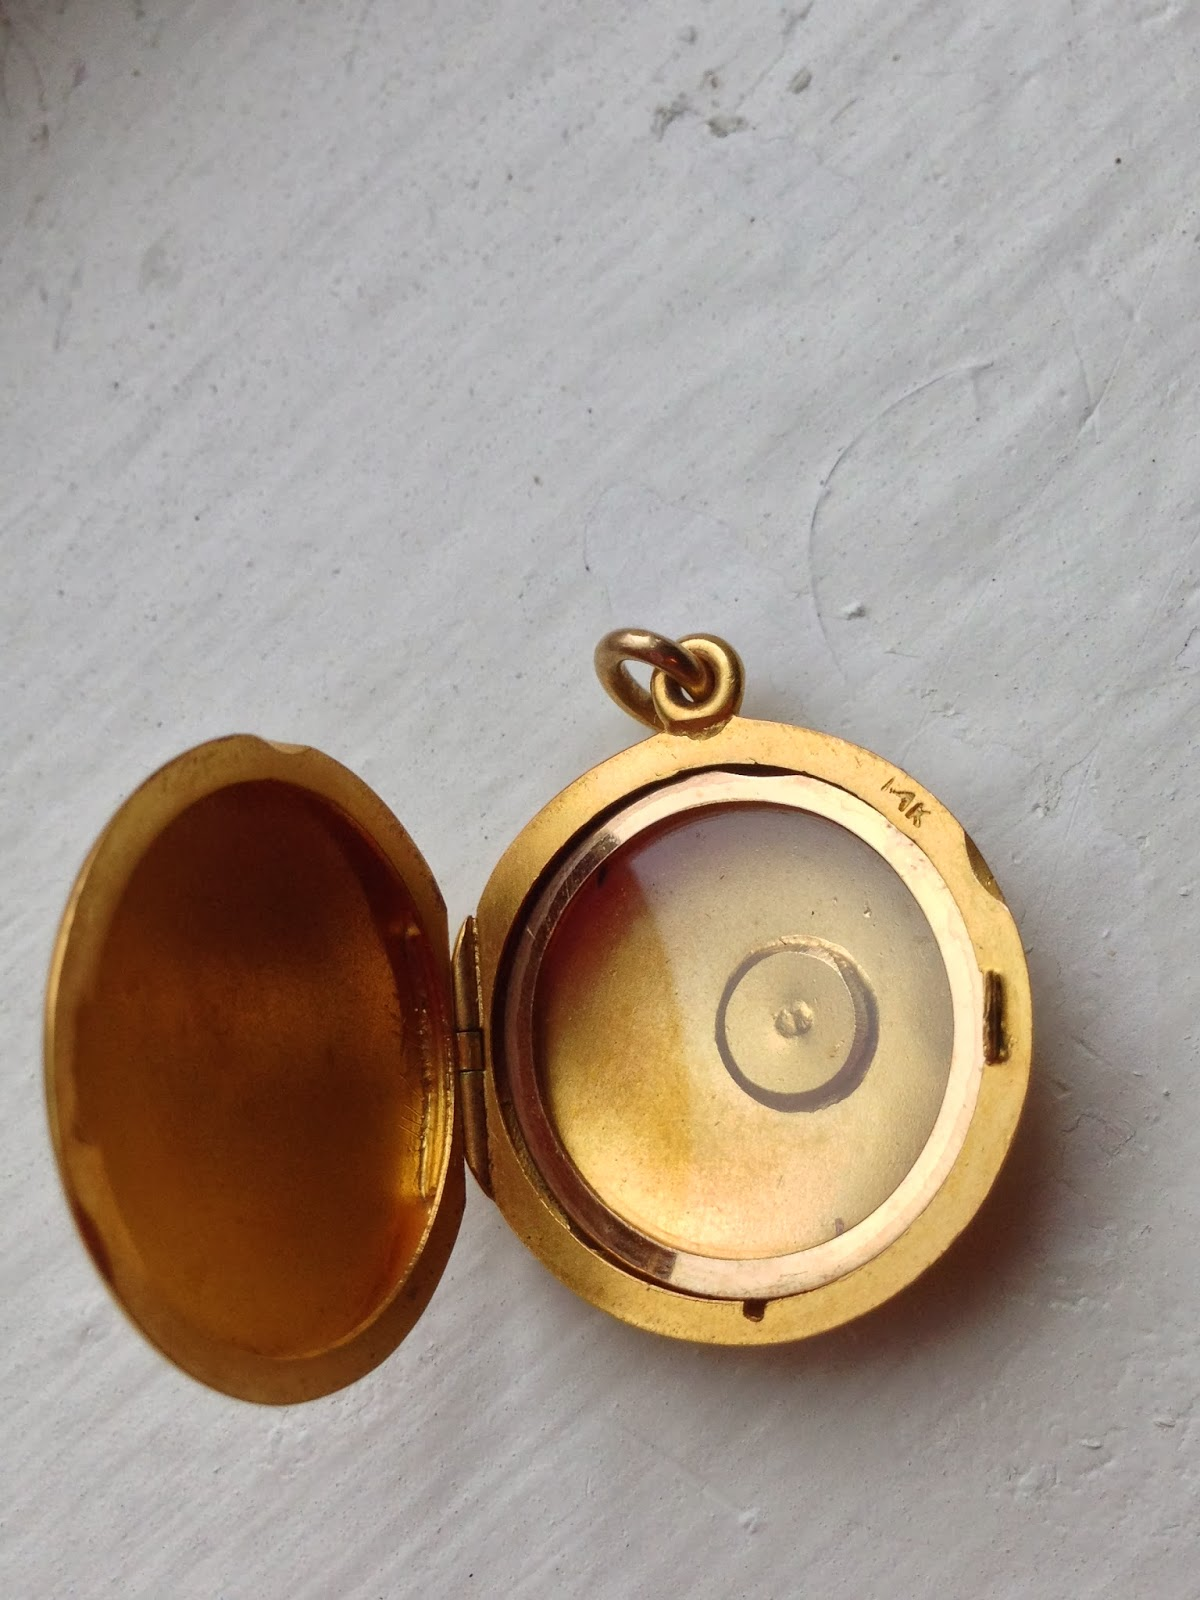 w scrap gold k grams lockets diamonds solid pin victorian locket